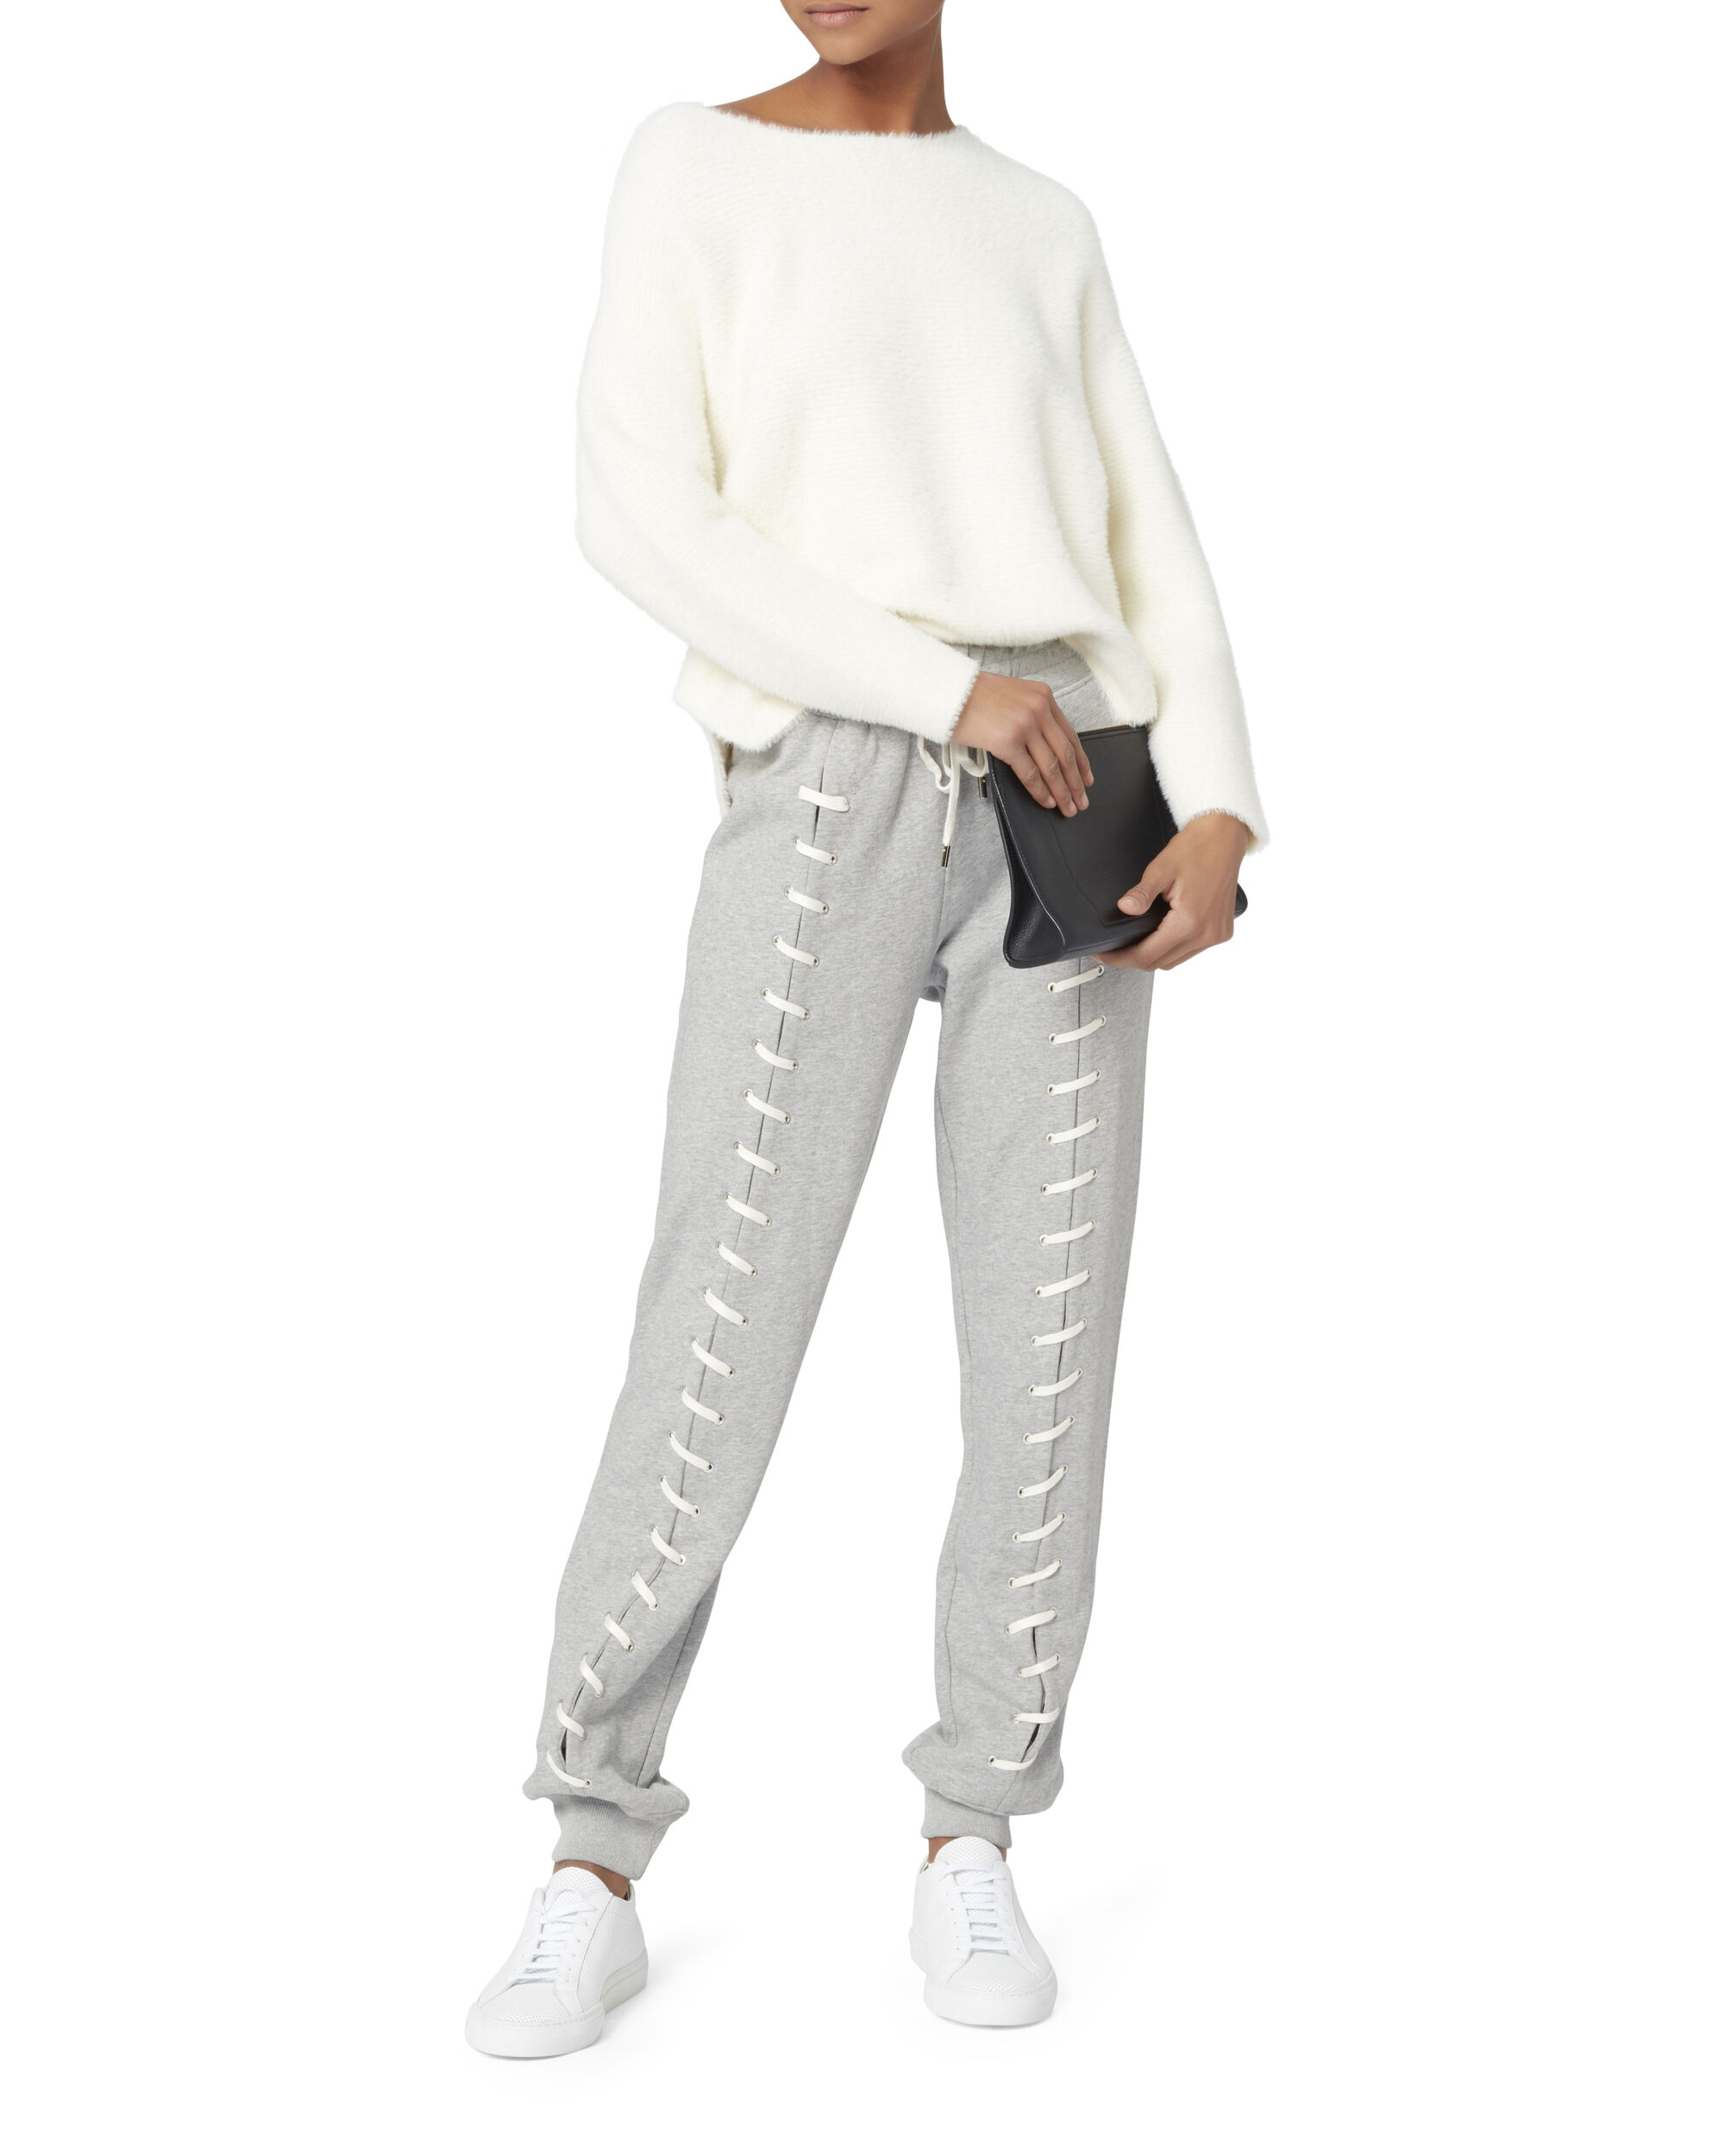 Whipstitch Sweatpants, GREY, hi-res